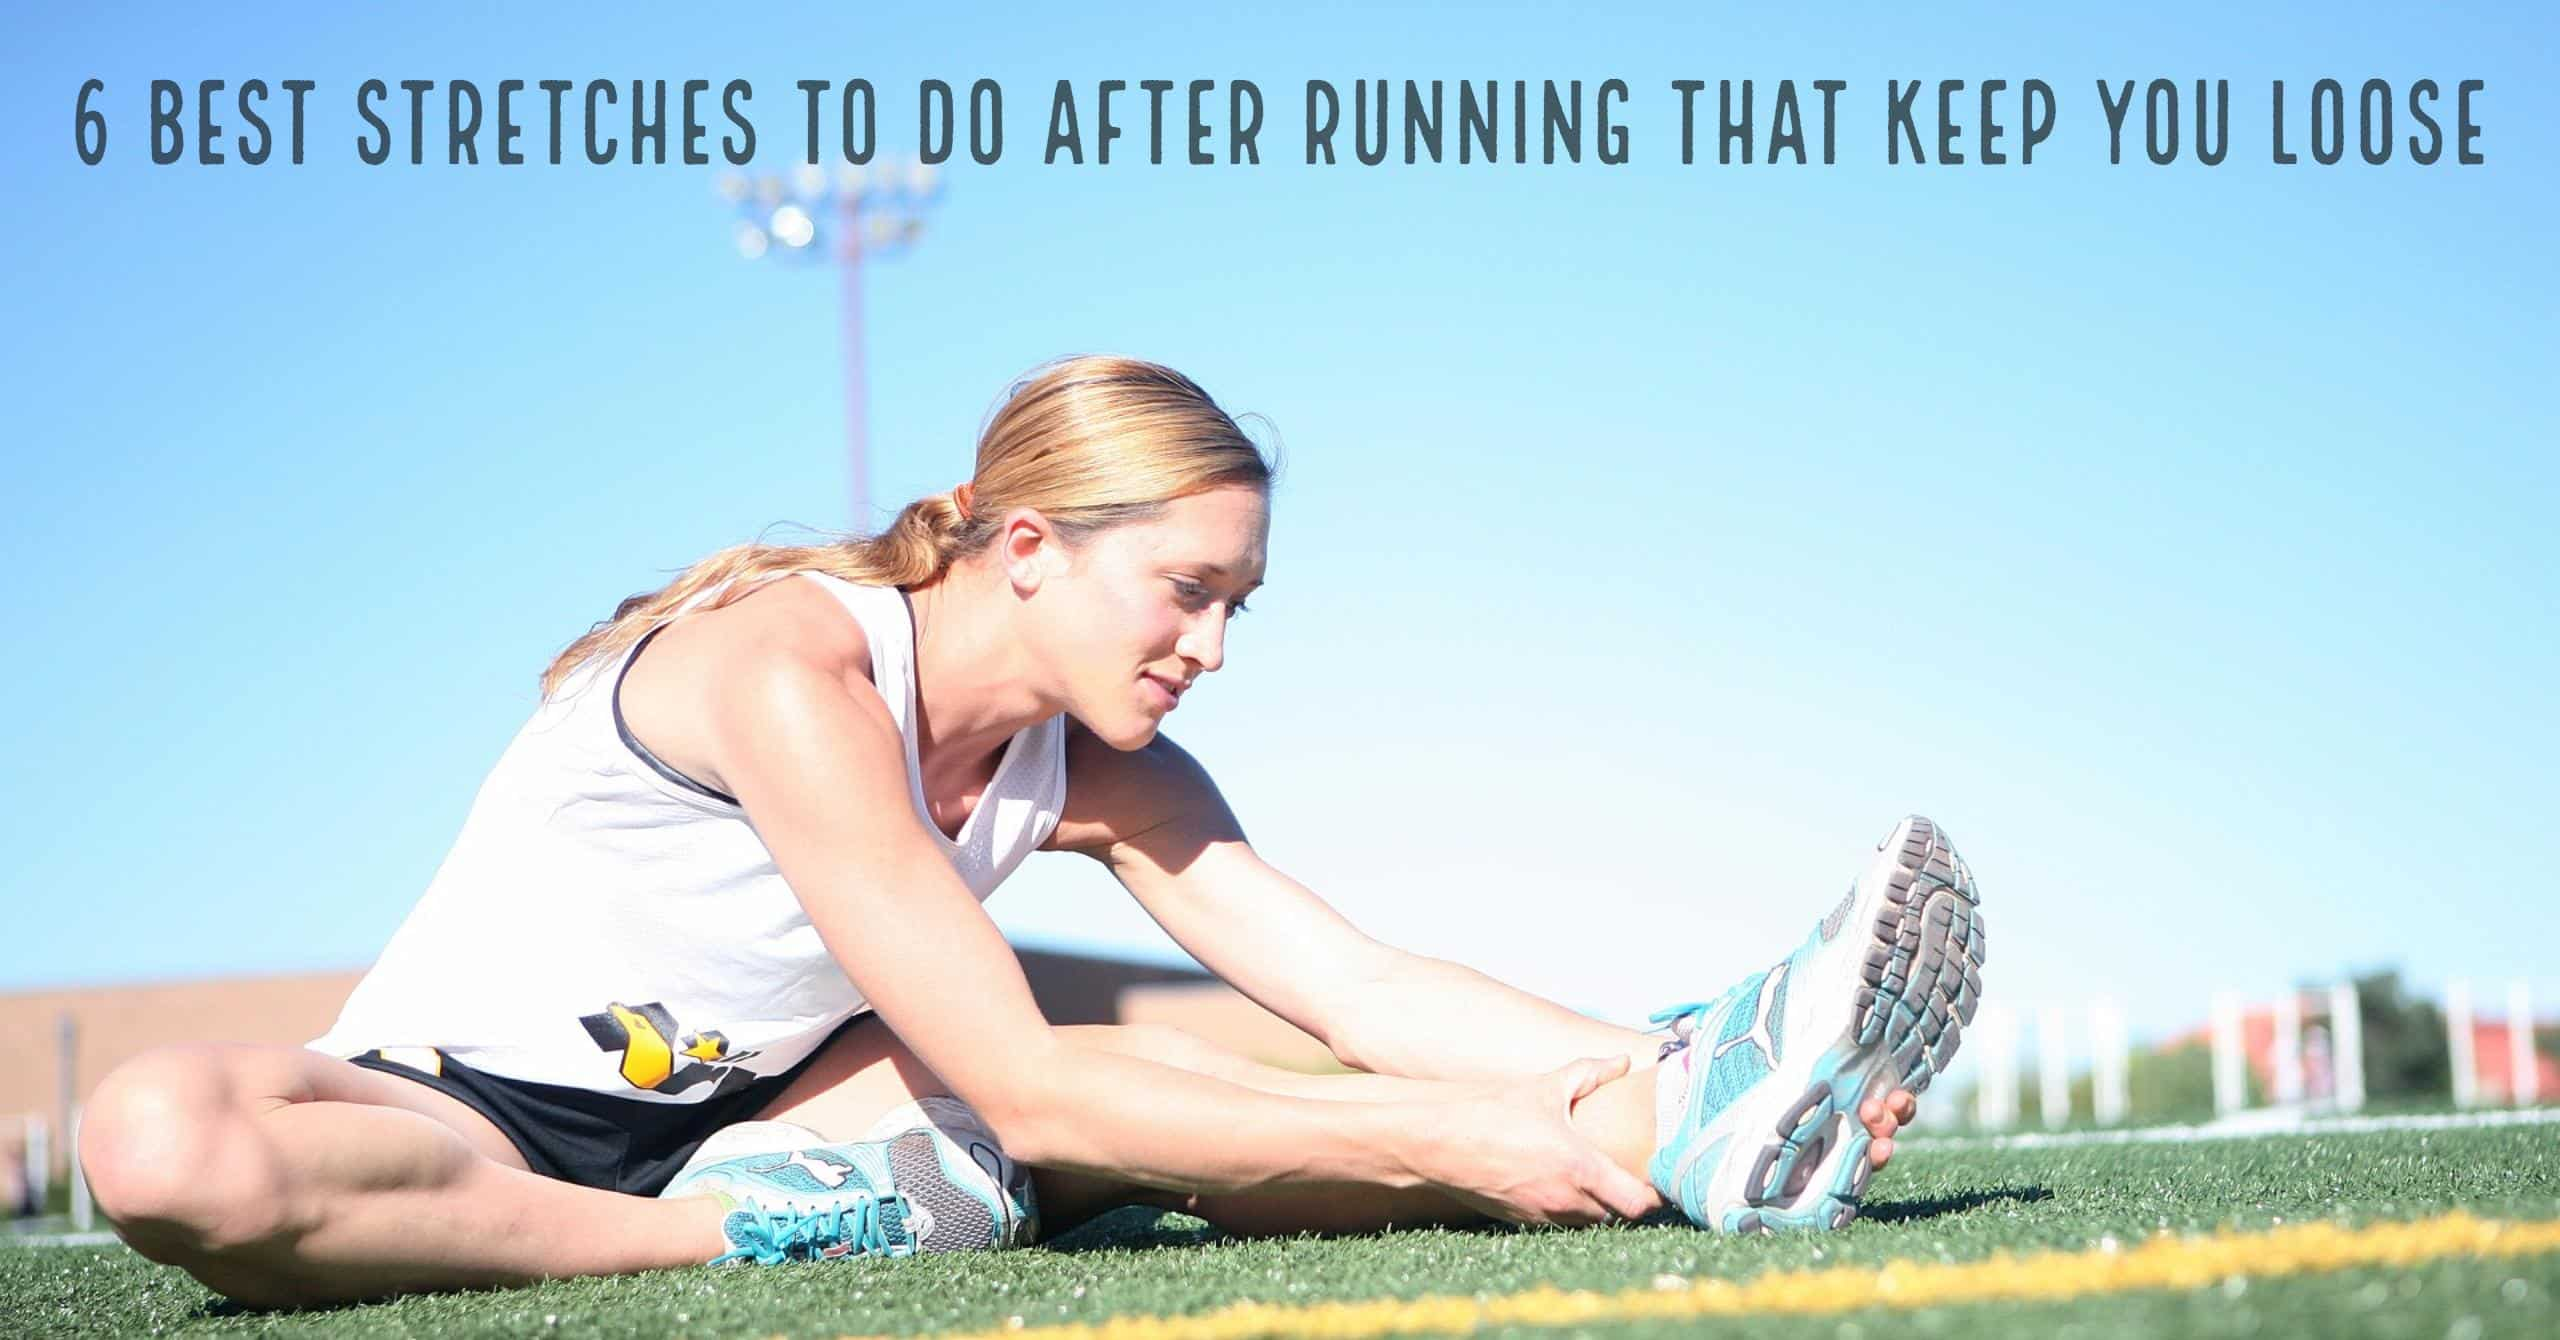 6 Best Stretches To Do After Running That Keep You Loose & Feeling Good